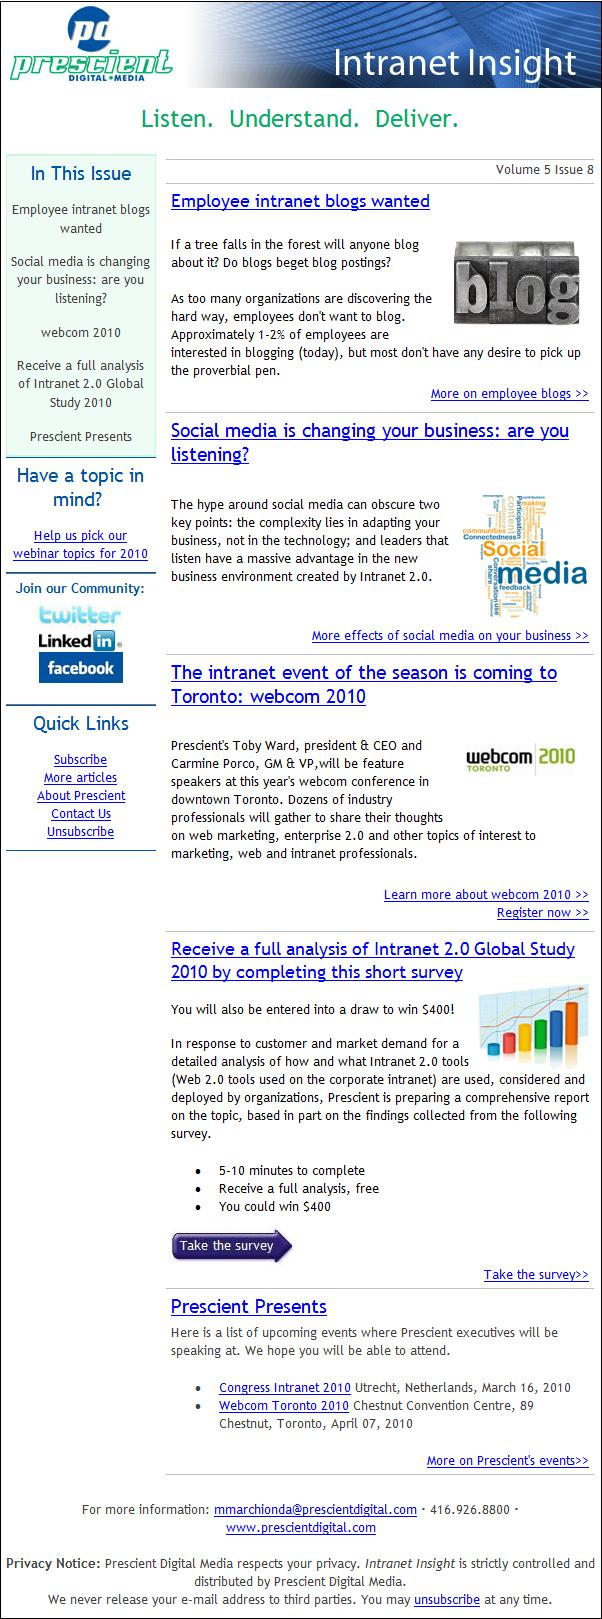 Intranet Insight Volume 5 Issue 8